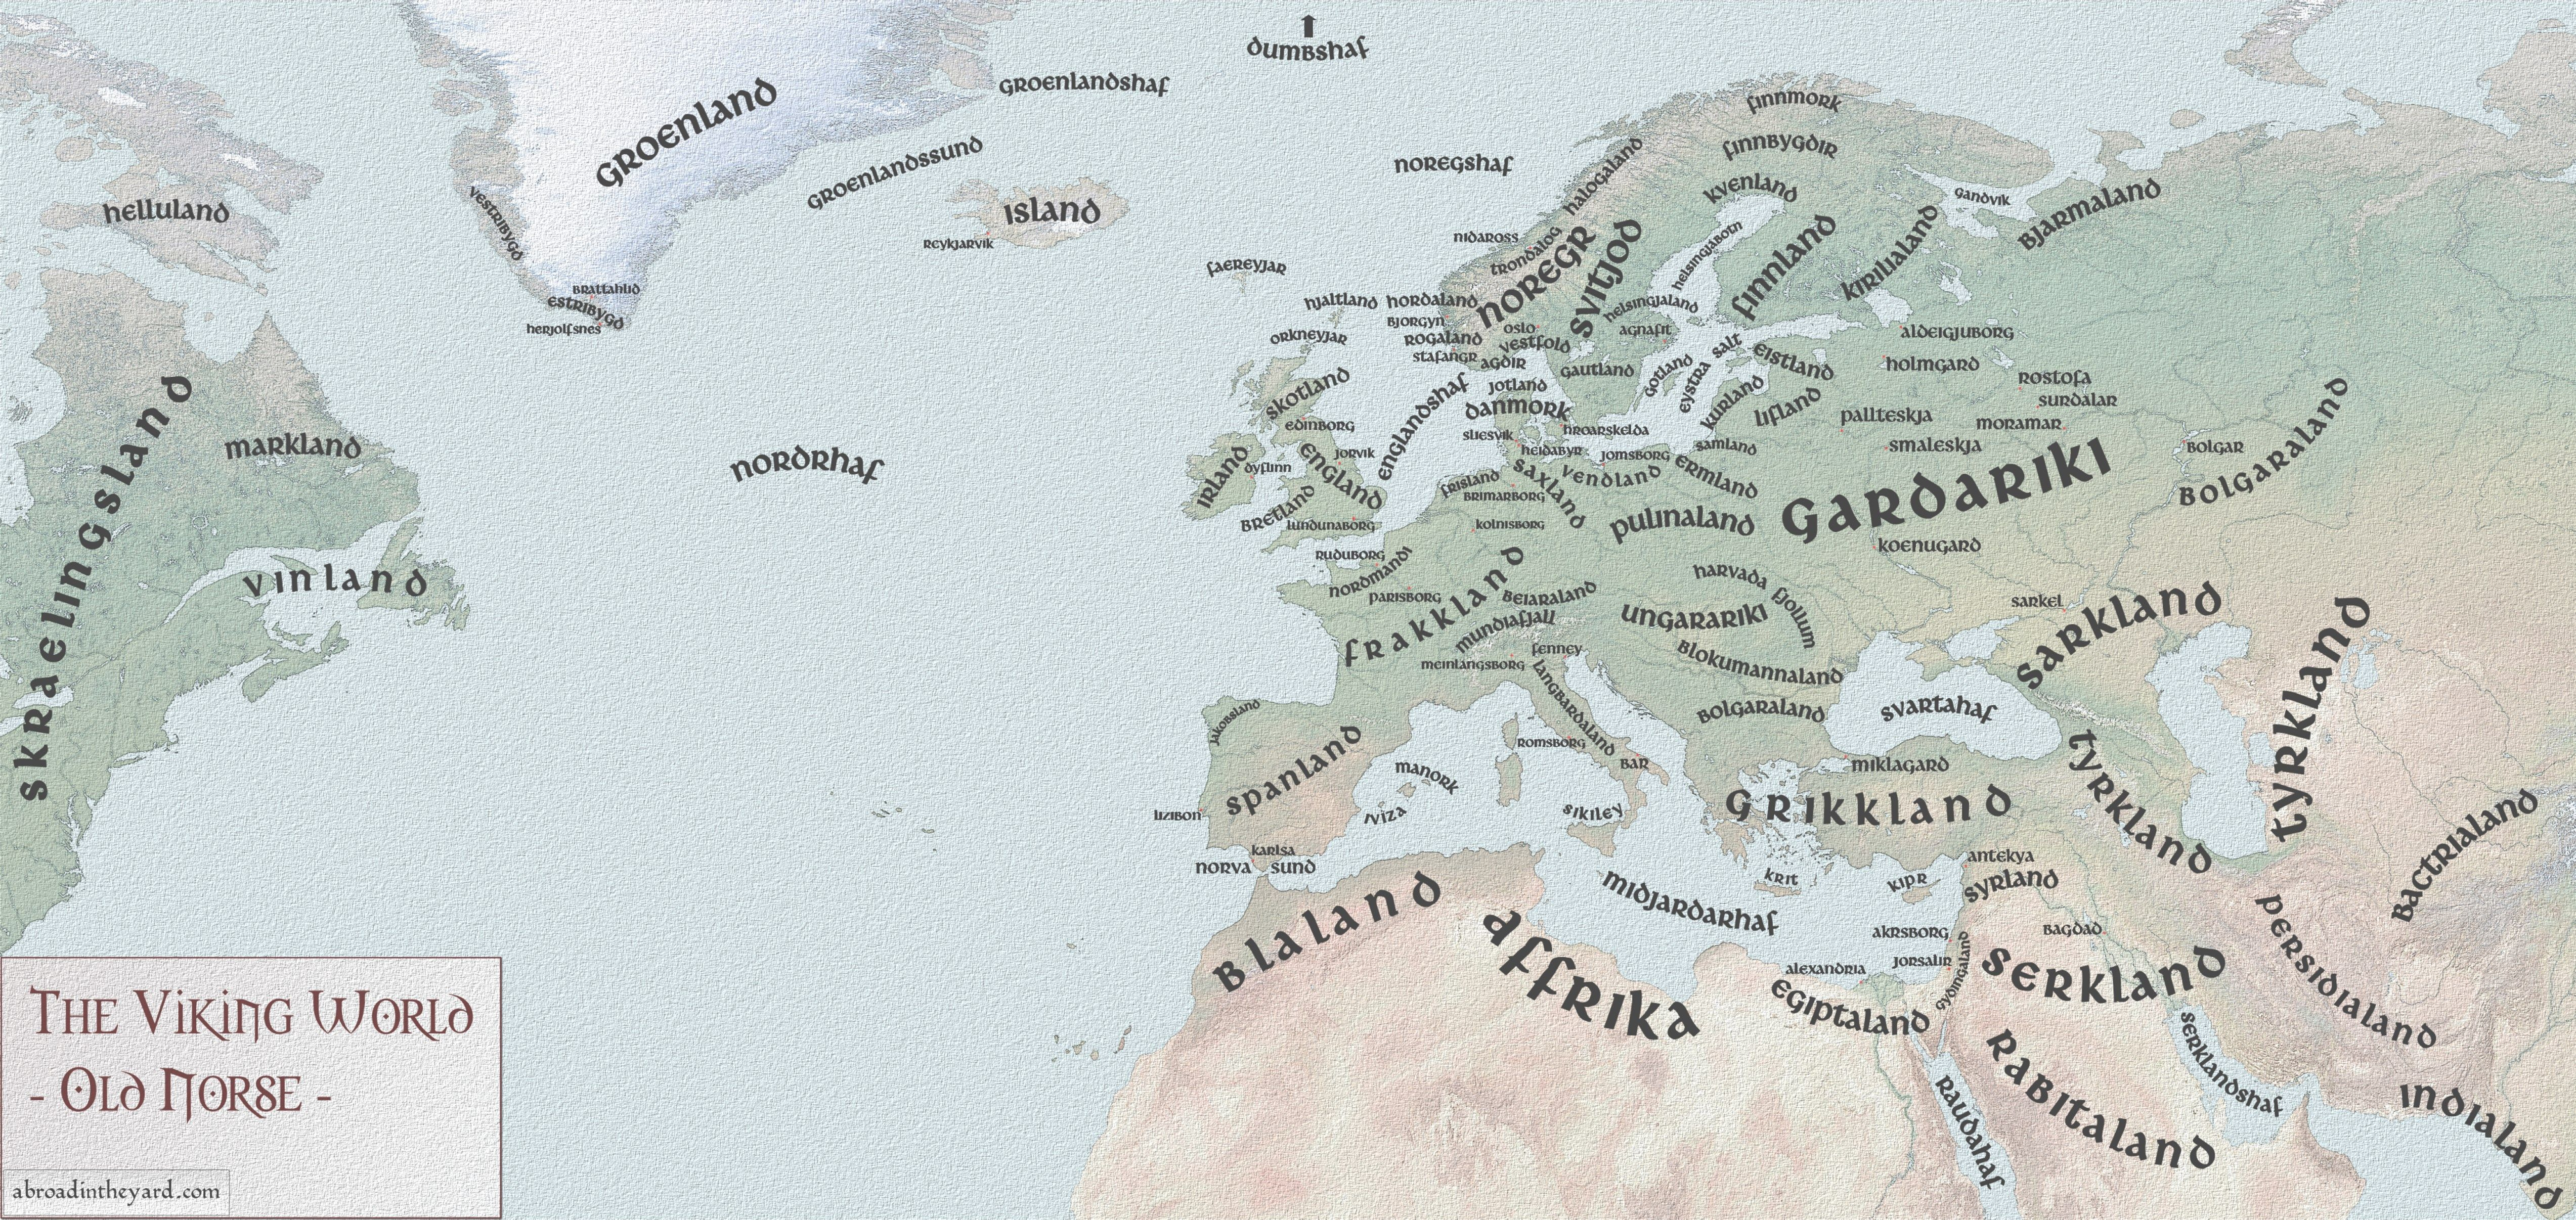 Viking Map W Old Norse Names Lands Inhabited Visited Raided By Vikings The Big Question What Is Aleppo Https Www Facebook Co Old Norse Norse Vikings